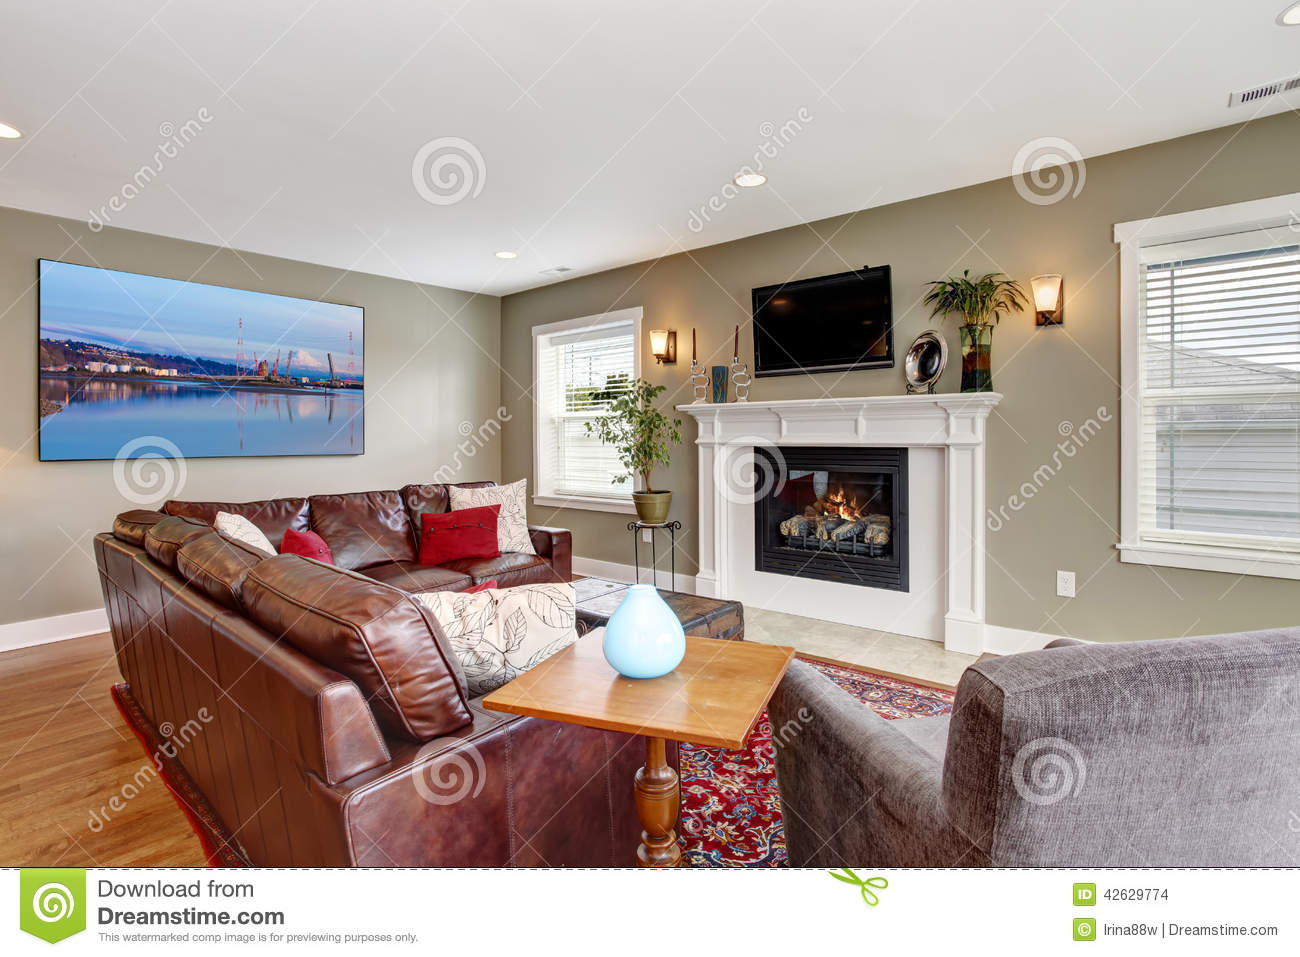 Living room with cozy fireplace and leather couch stock photo image of entertainment for Soggiorno arredato